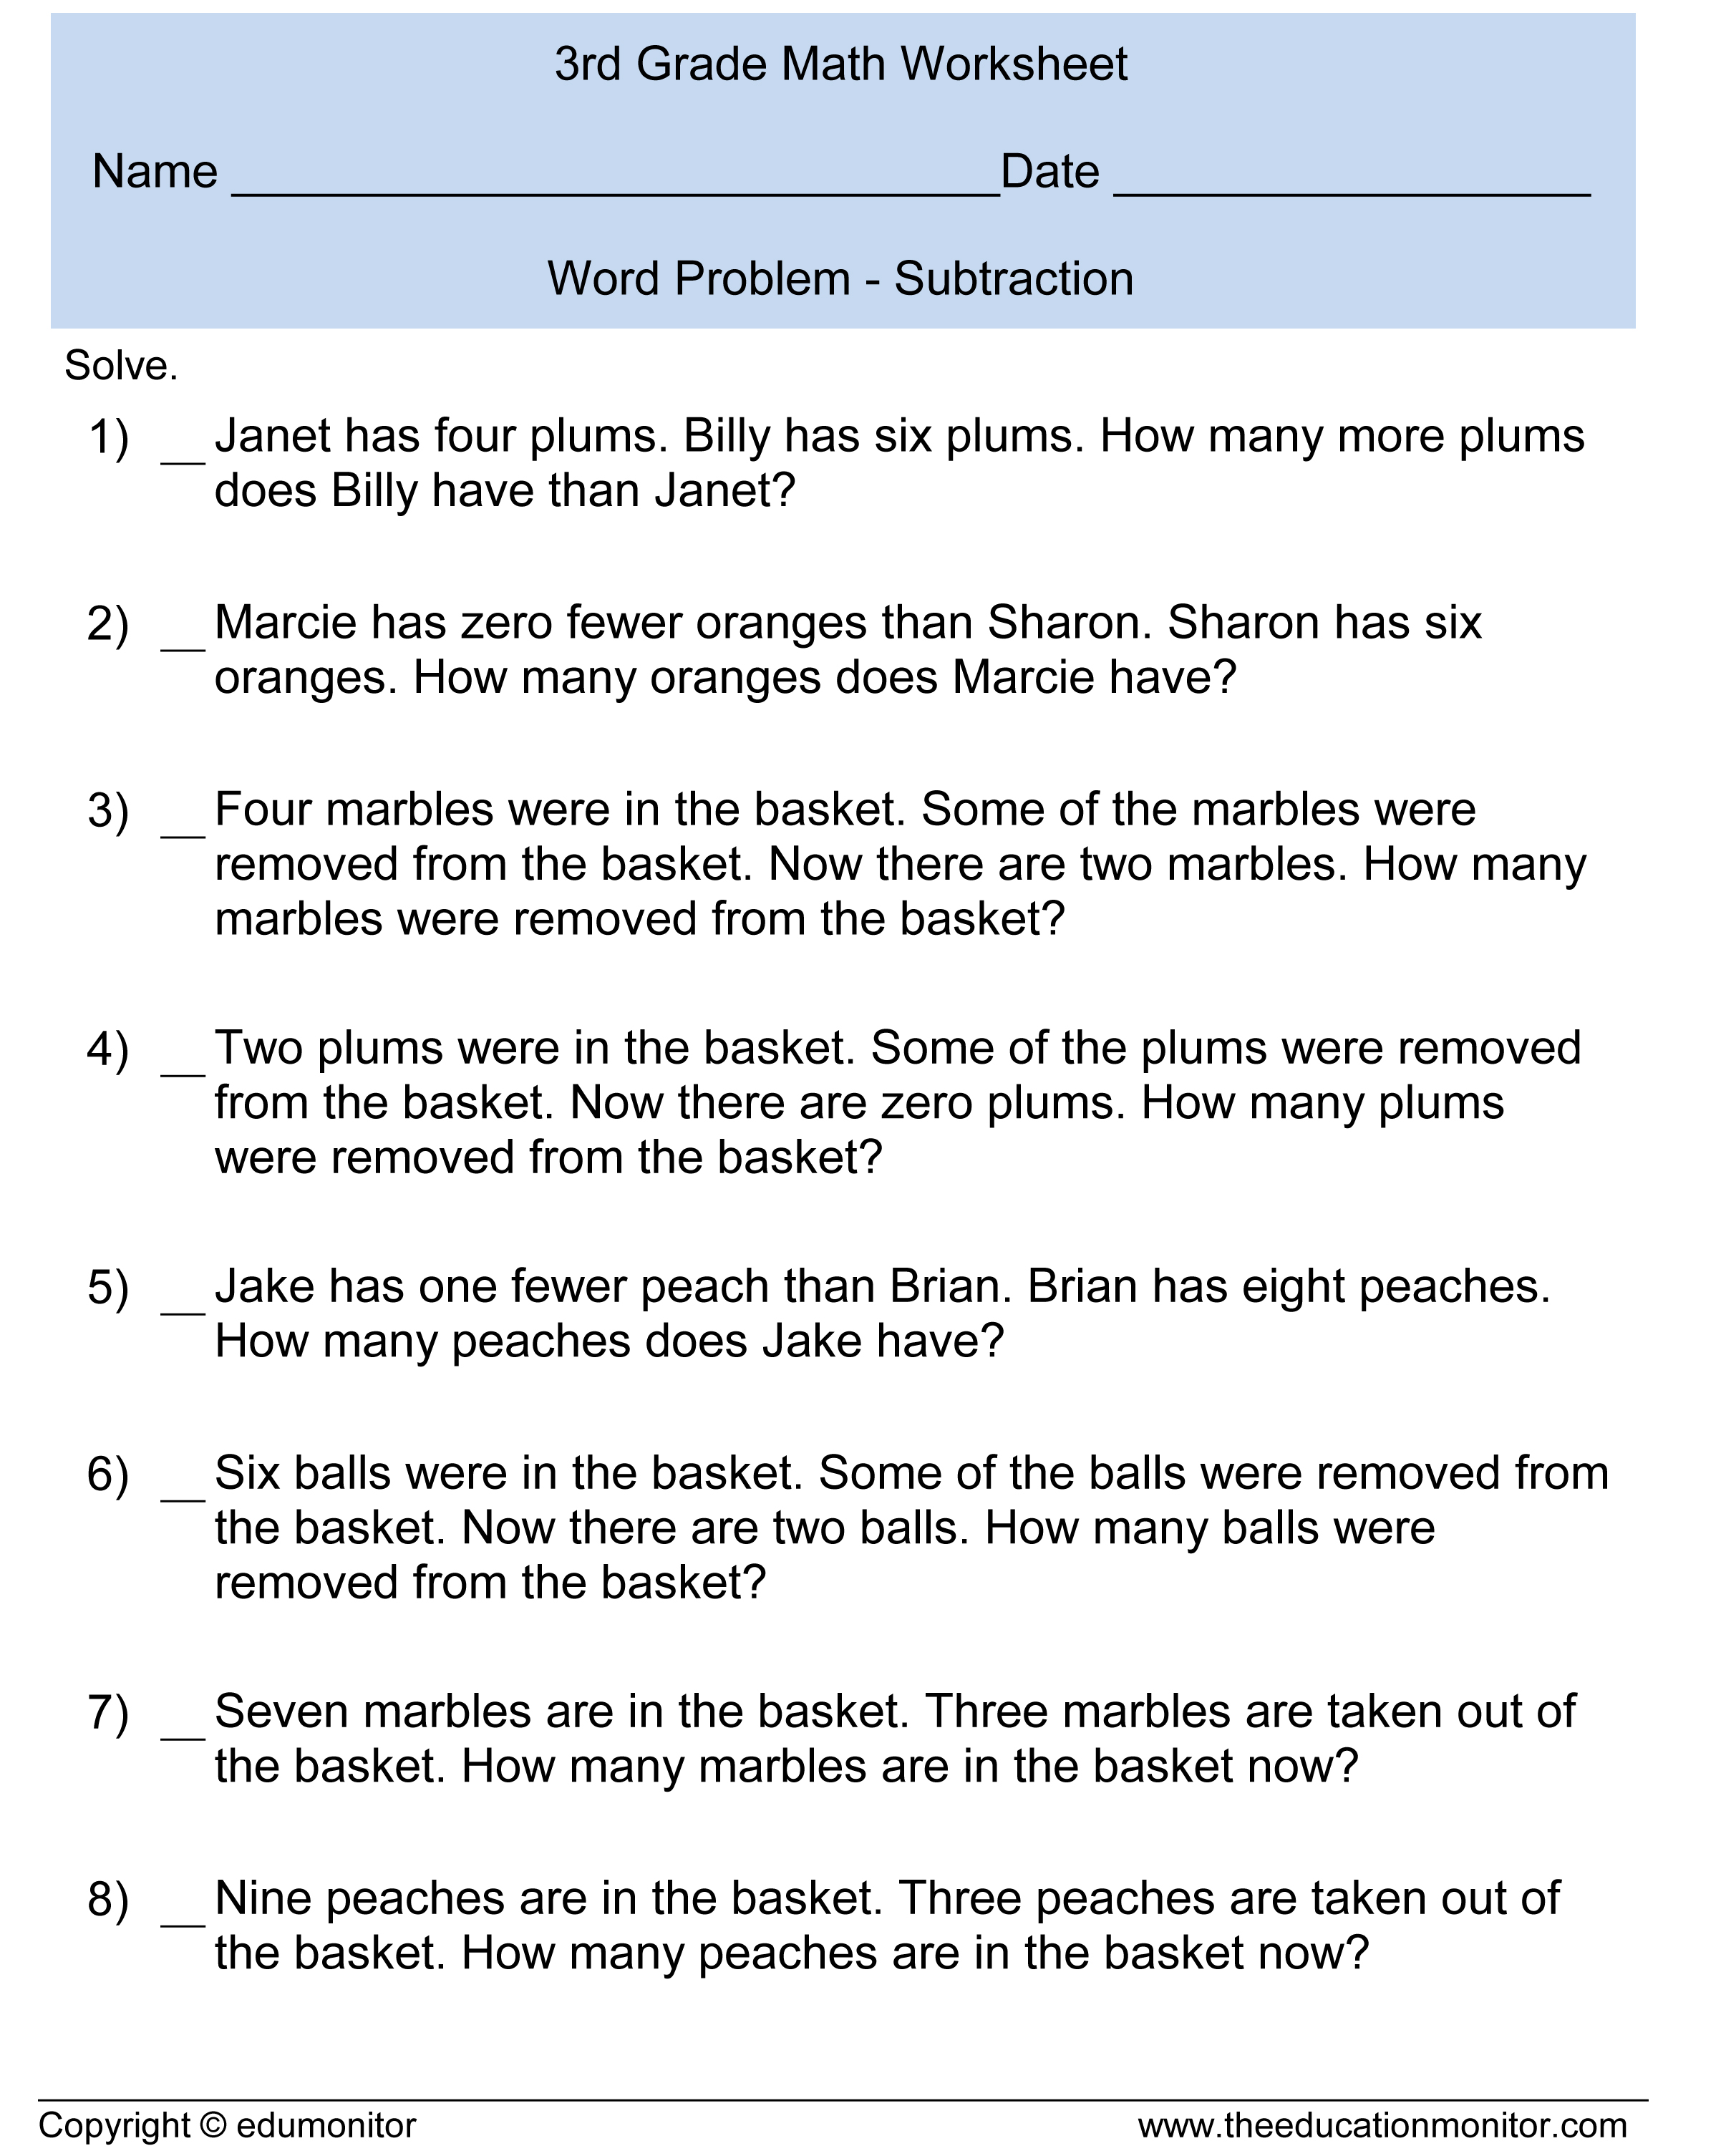 Addition And Subtraction Word Problems Worksheets 5th Grade Scalien – Subtraction Word Problems Worksheets